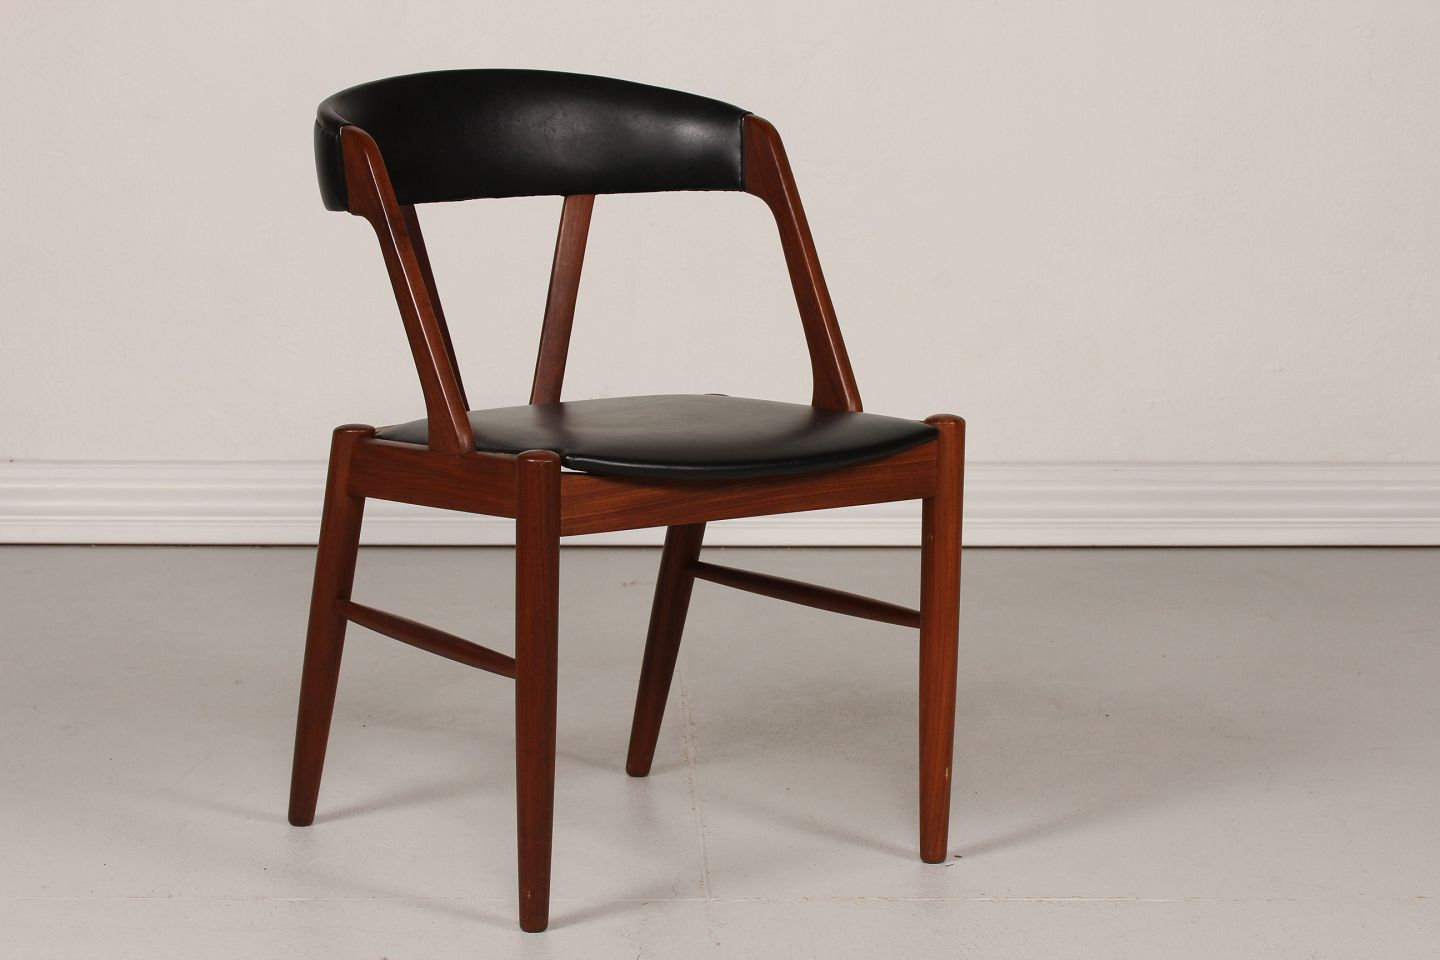 Danish Modern Chair Of Teak With Skai